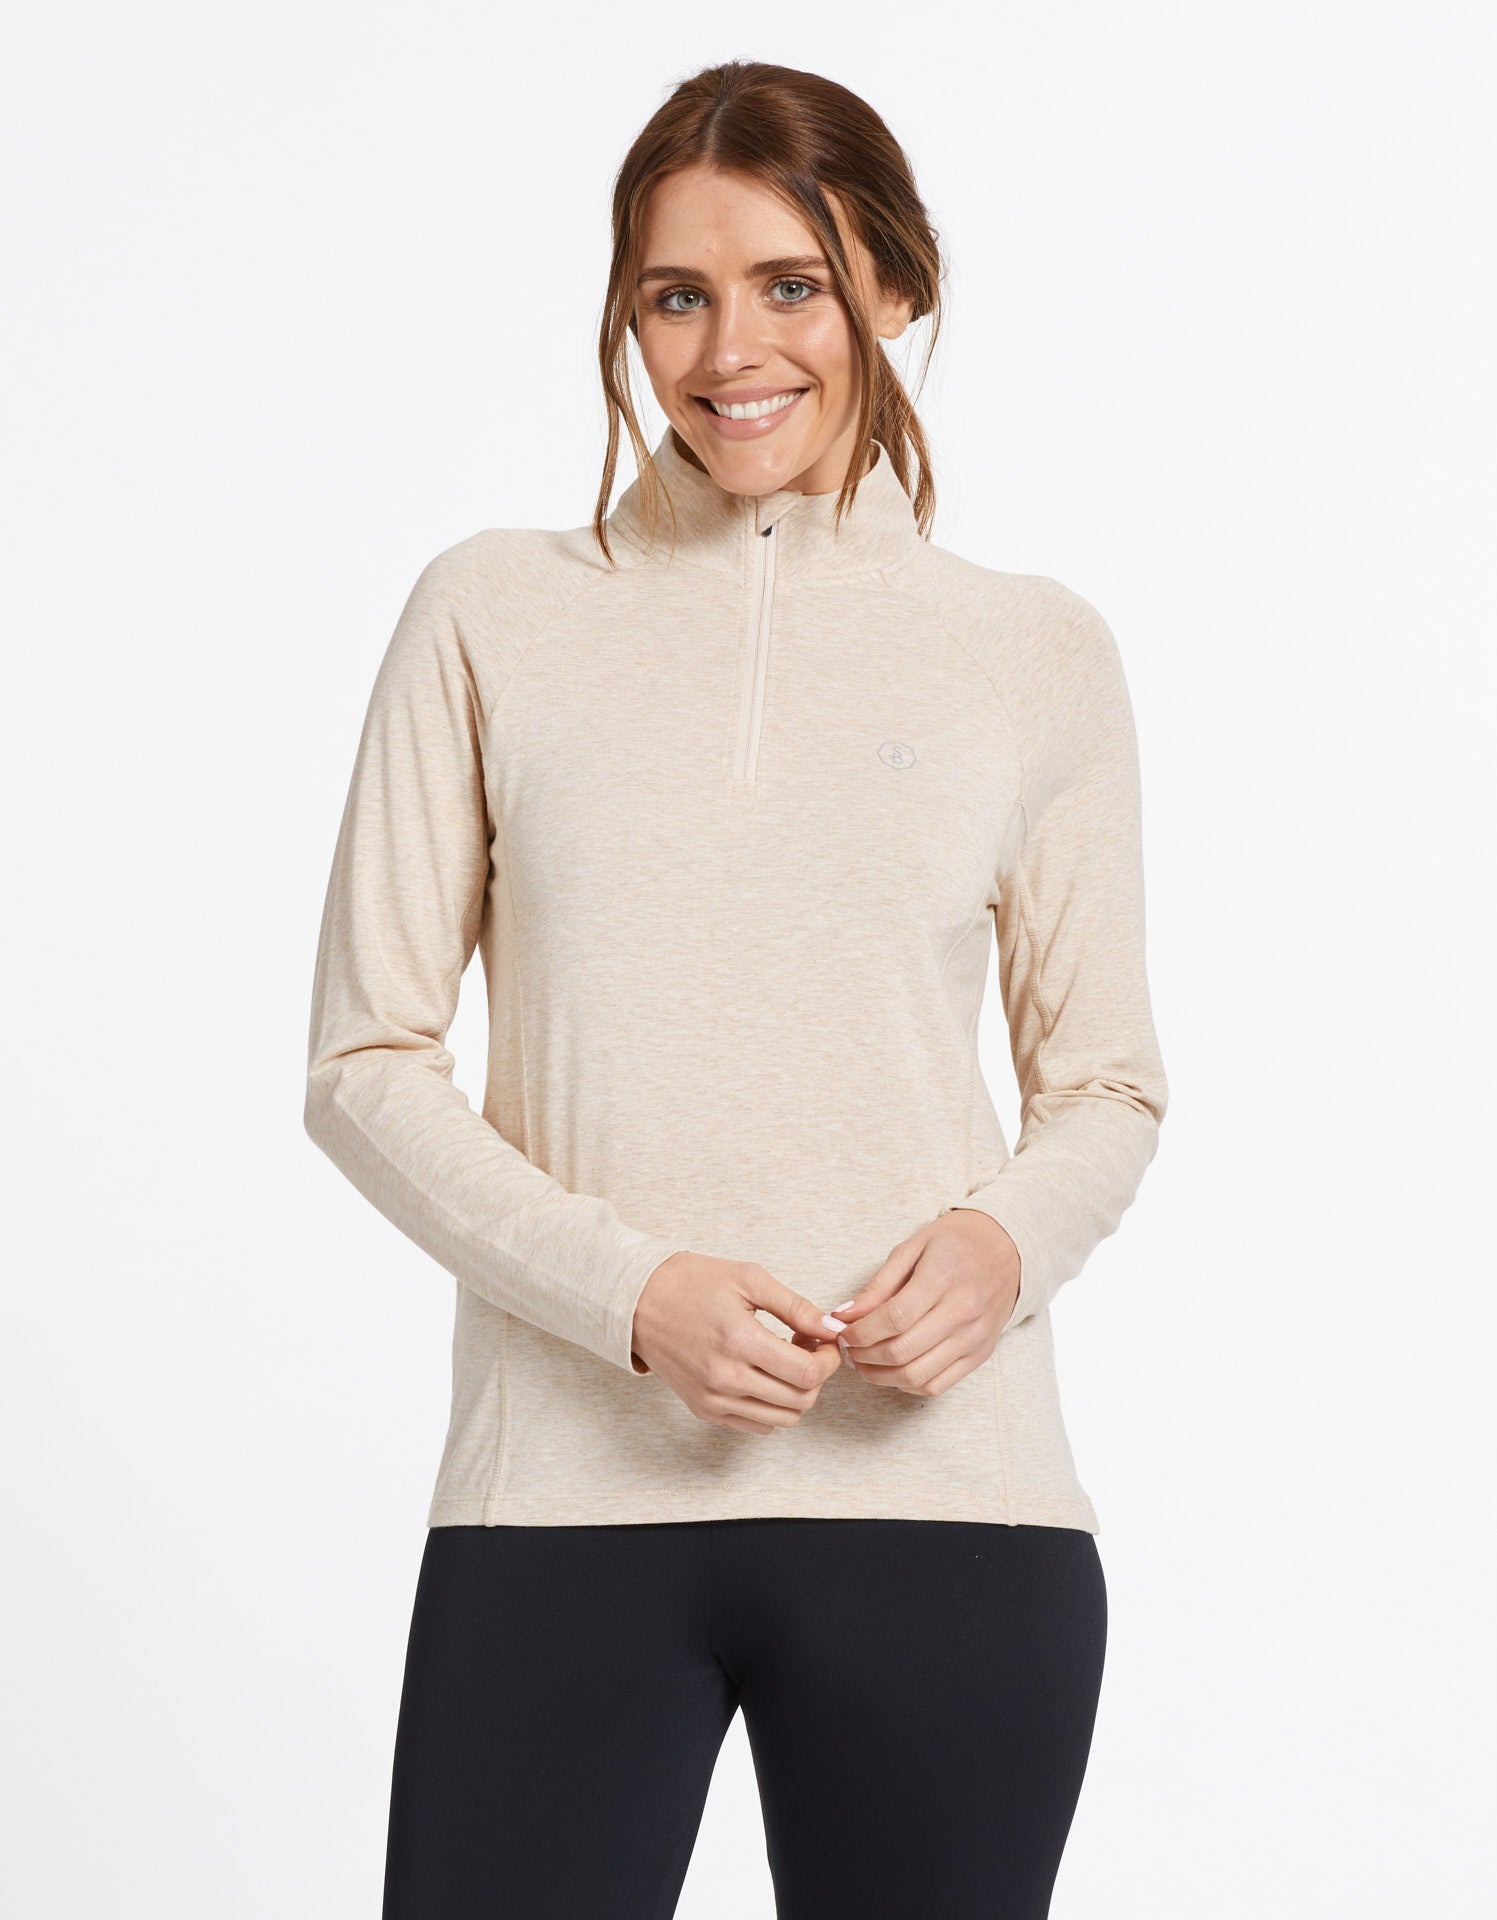 Solbari Sun Protection UPF50+ Women's Quarter Zip Top Sensitive Collection in Oatmeal